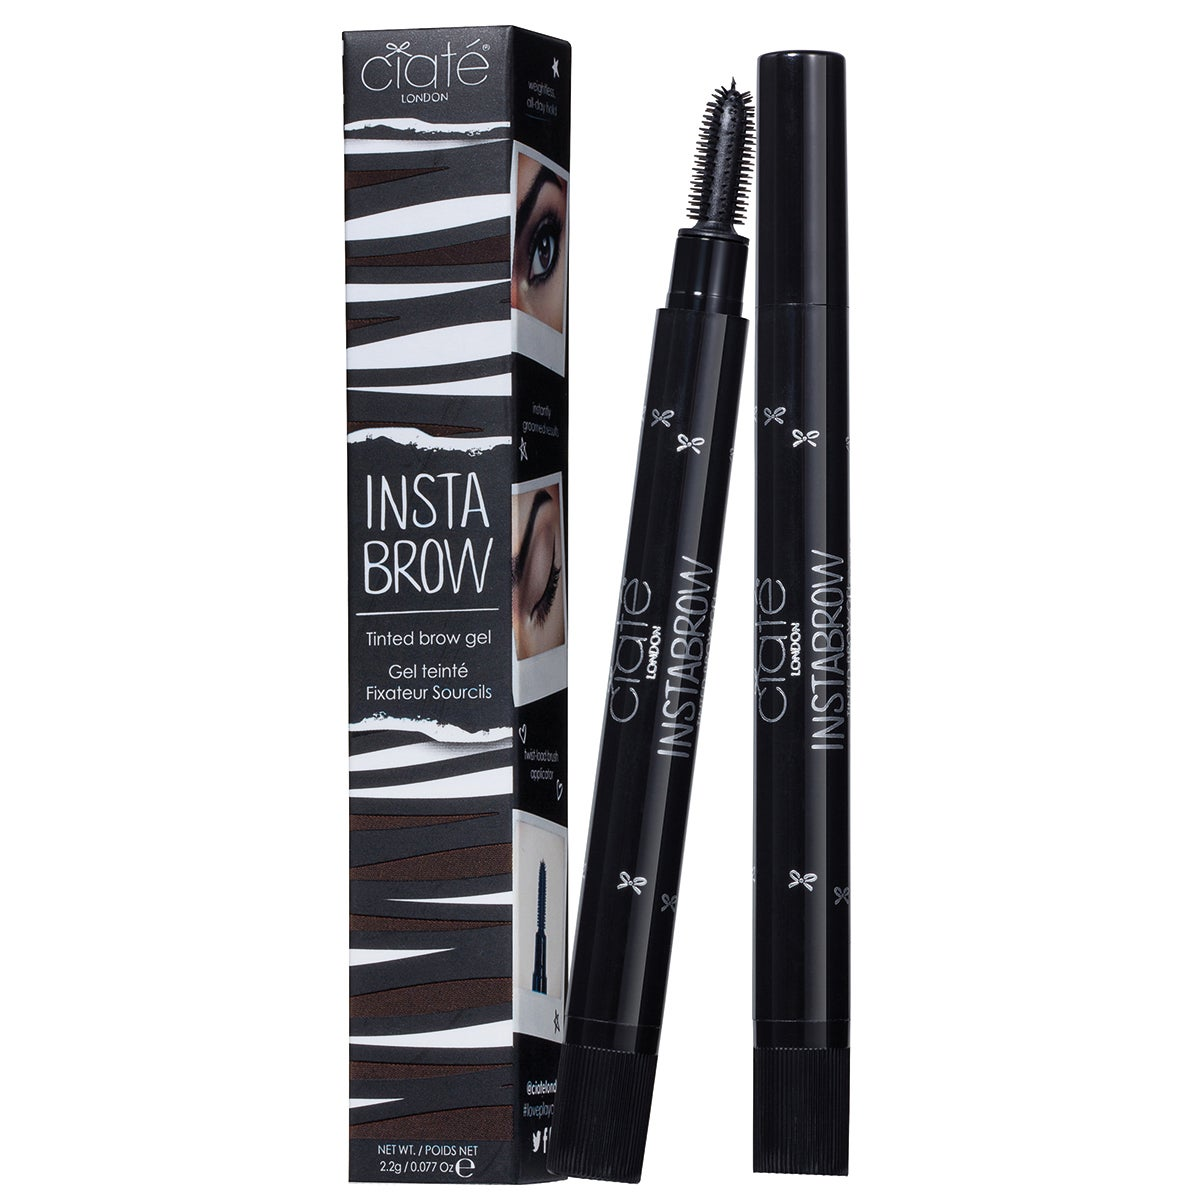 Ciaté Insta Brow Tinted Brow Gel